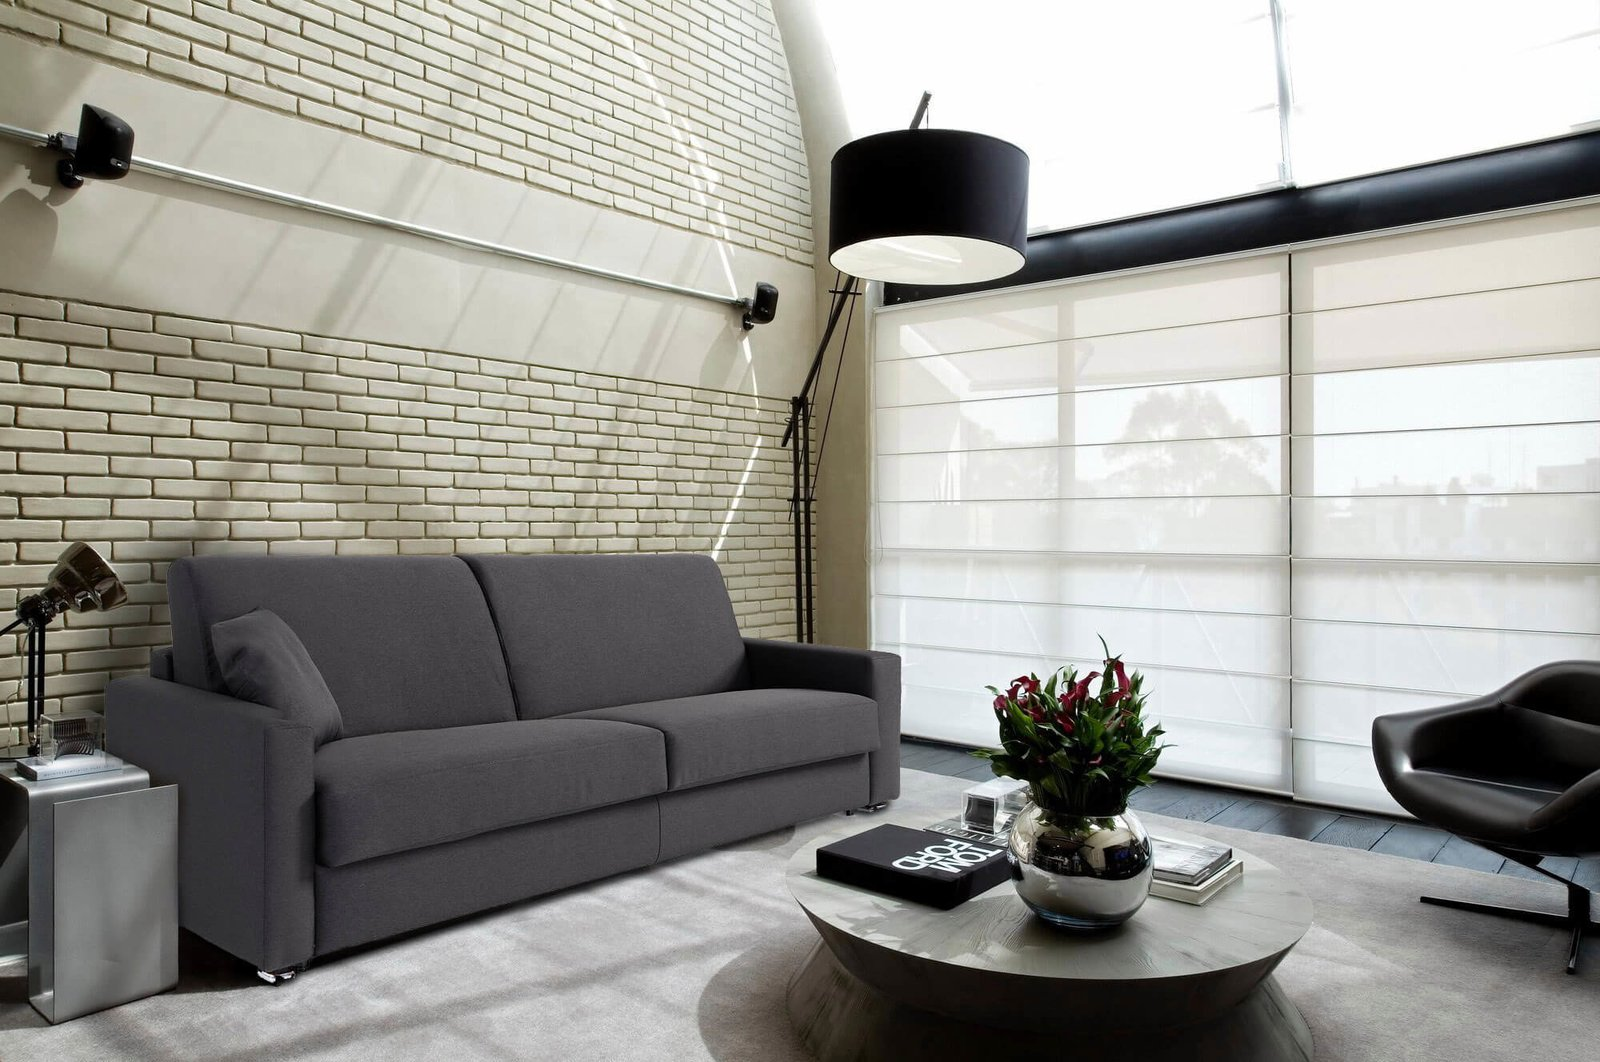 Sofa Bed Versus Wall Bed What S Best For Your Small Space Home